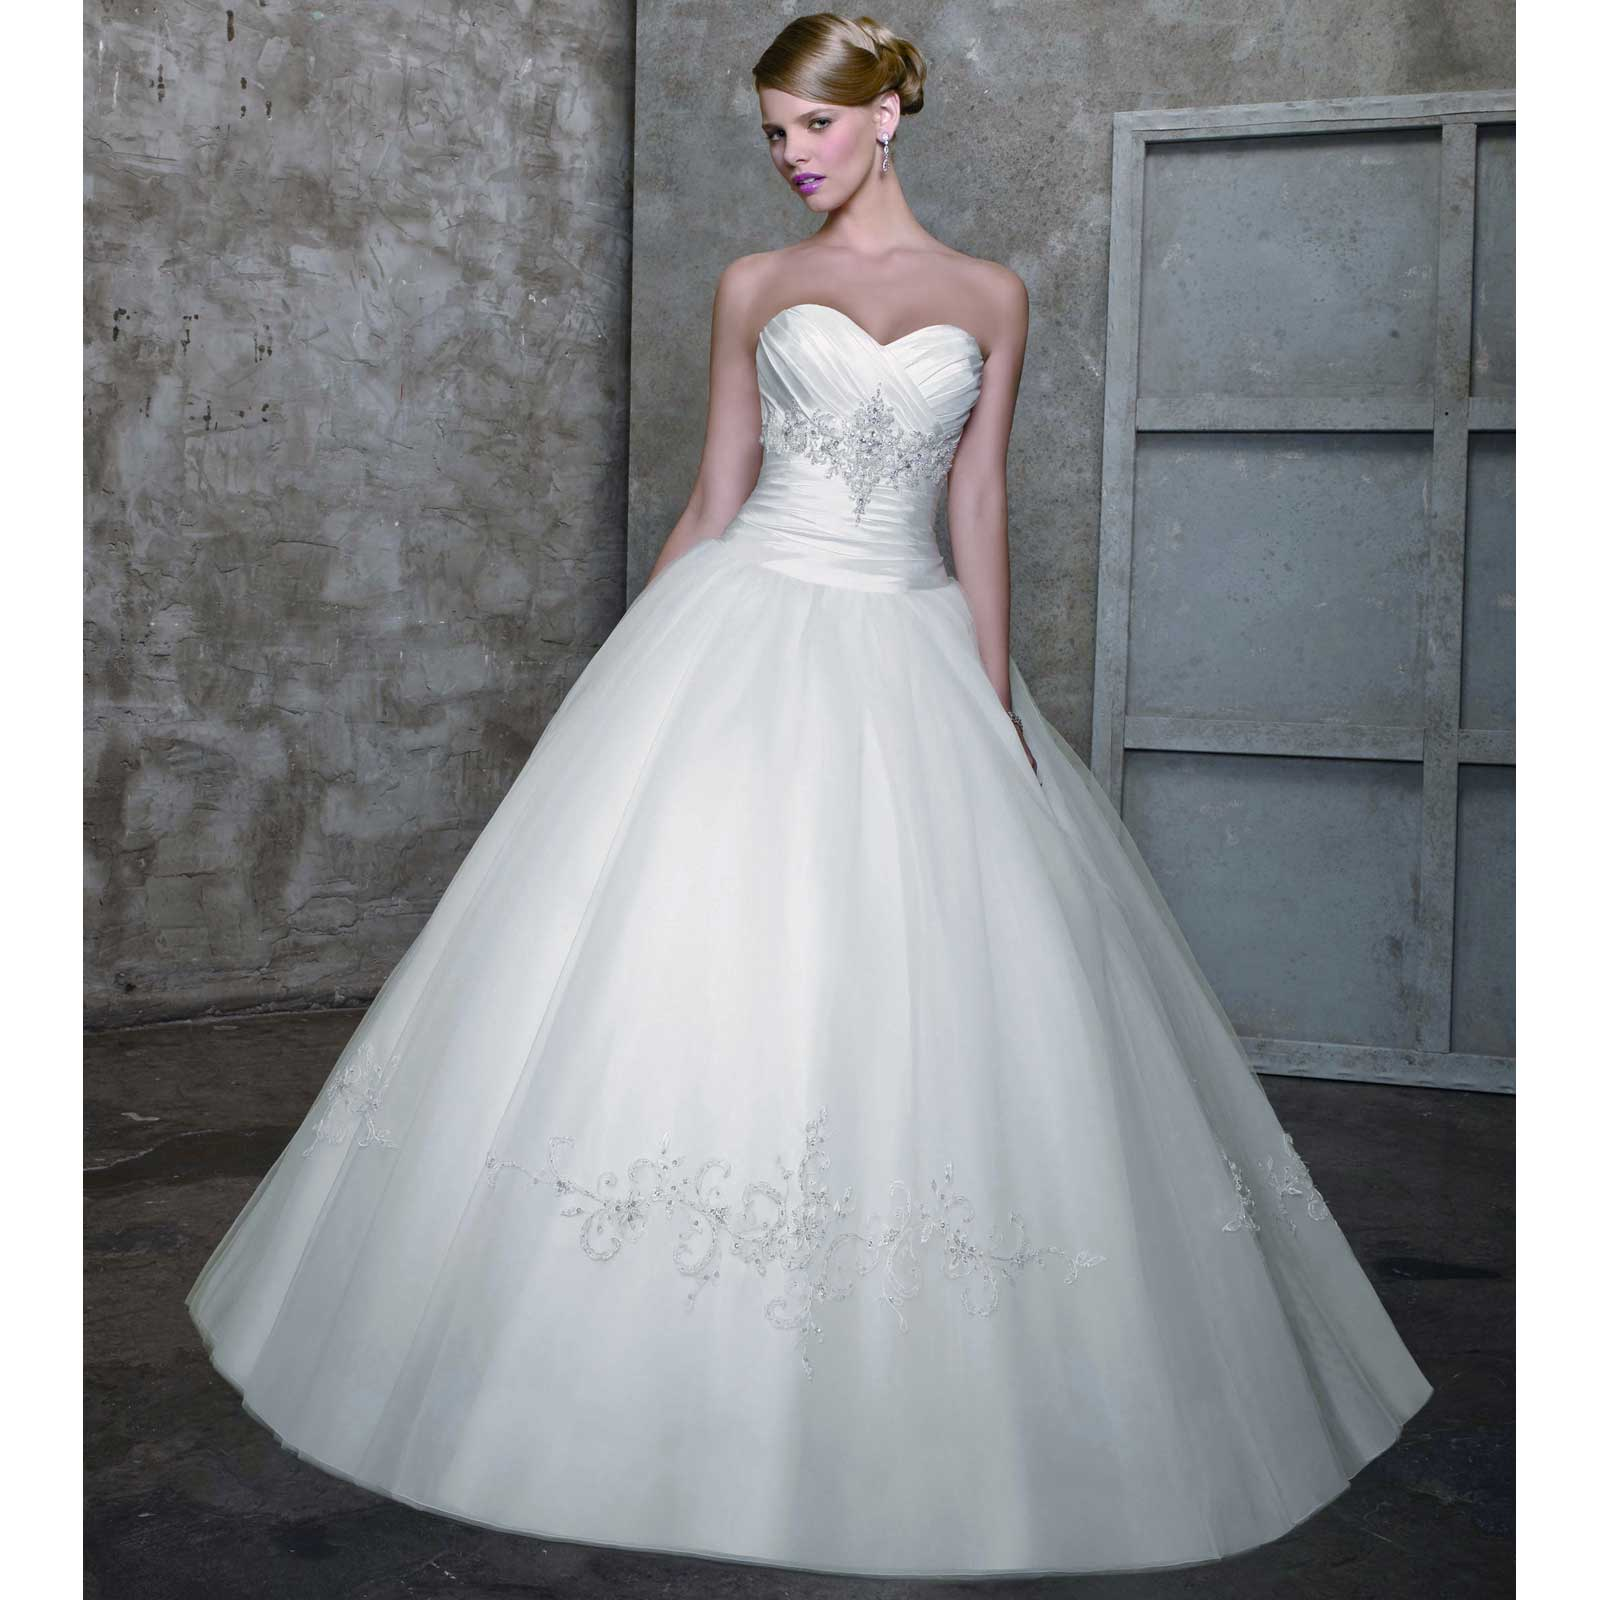 Princess Ball Gowns For Wedding: The Bridal House: Wedding Gowns 101: Bridal Ball Gowns